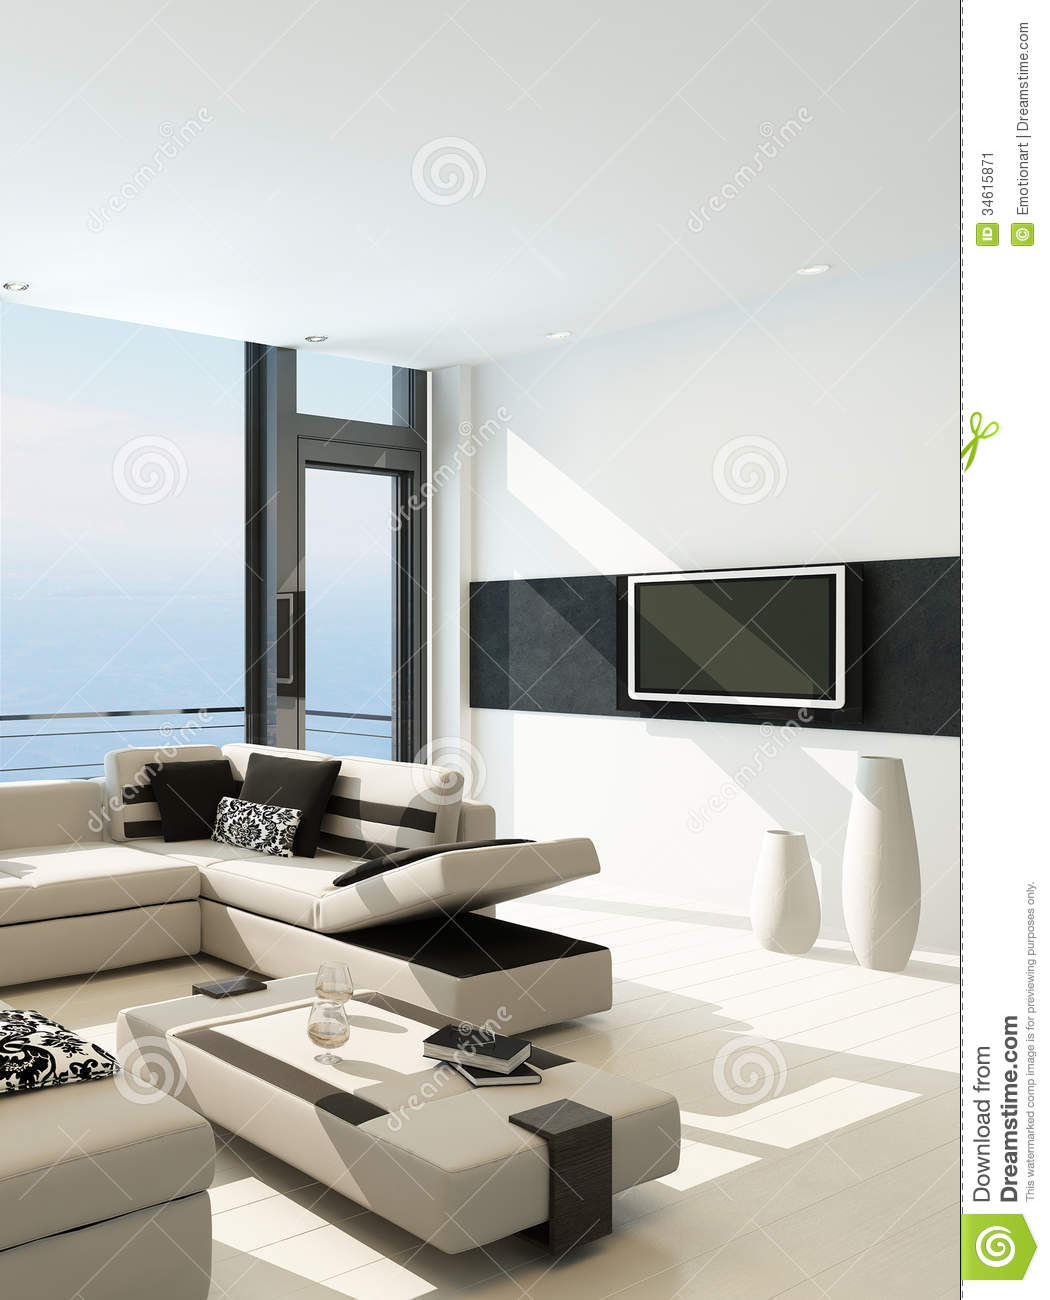 stock image modern white living room interior with splendid seascape